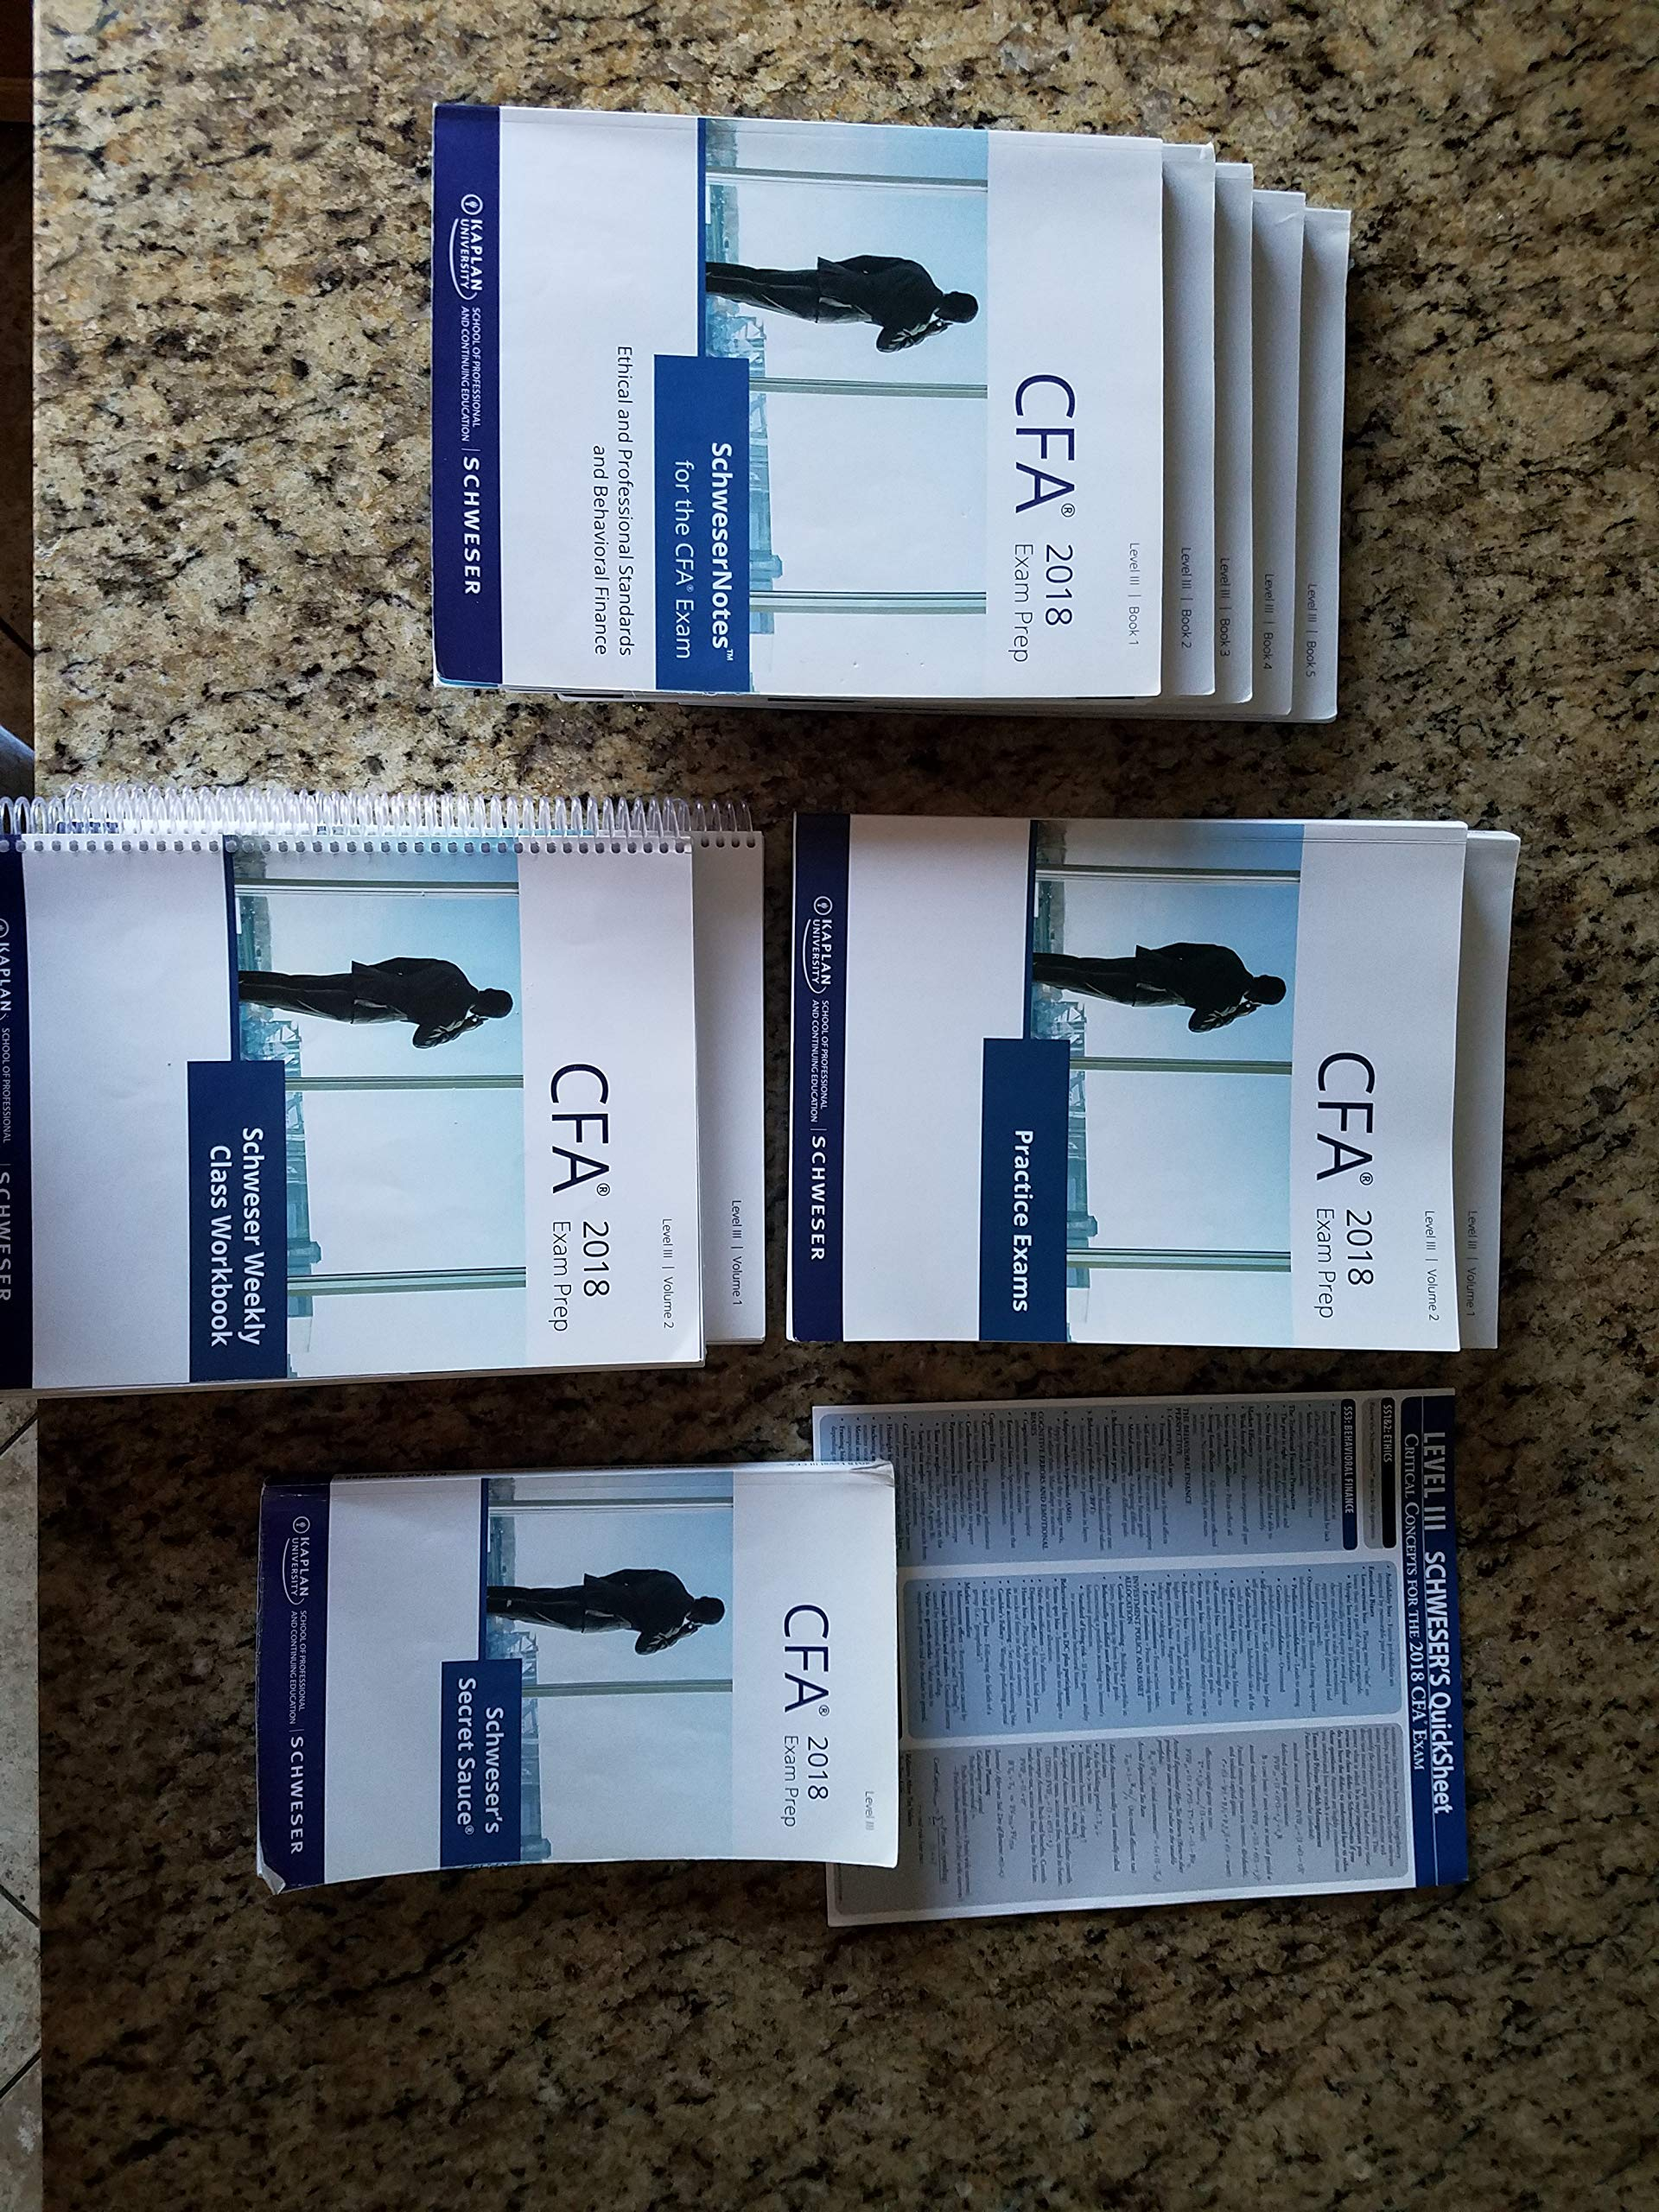 2018 CFA Level 3 Kaplan Schweser: Books 1-5, Practice Exam